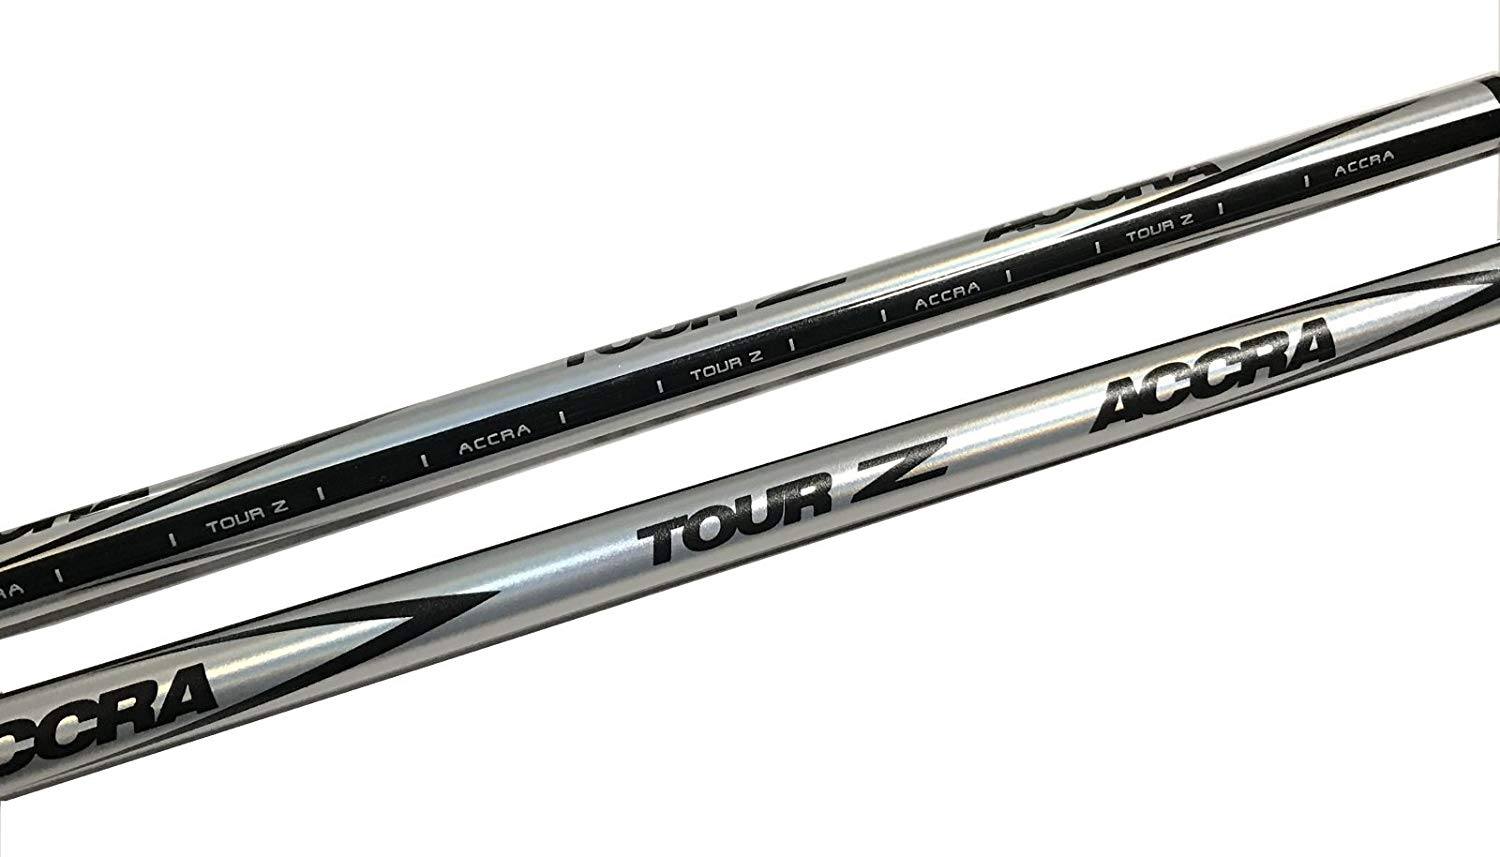 Accra New Tour Z 85 Driver Shaft Review